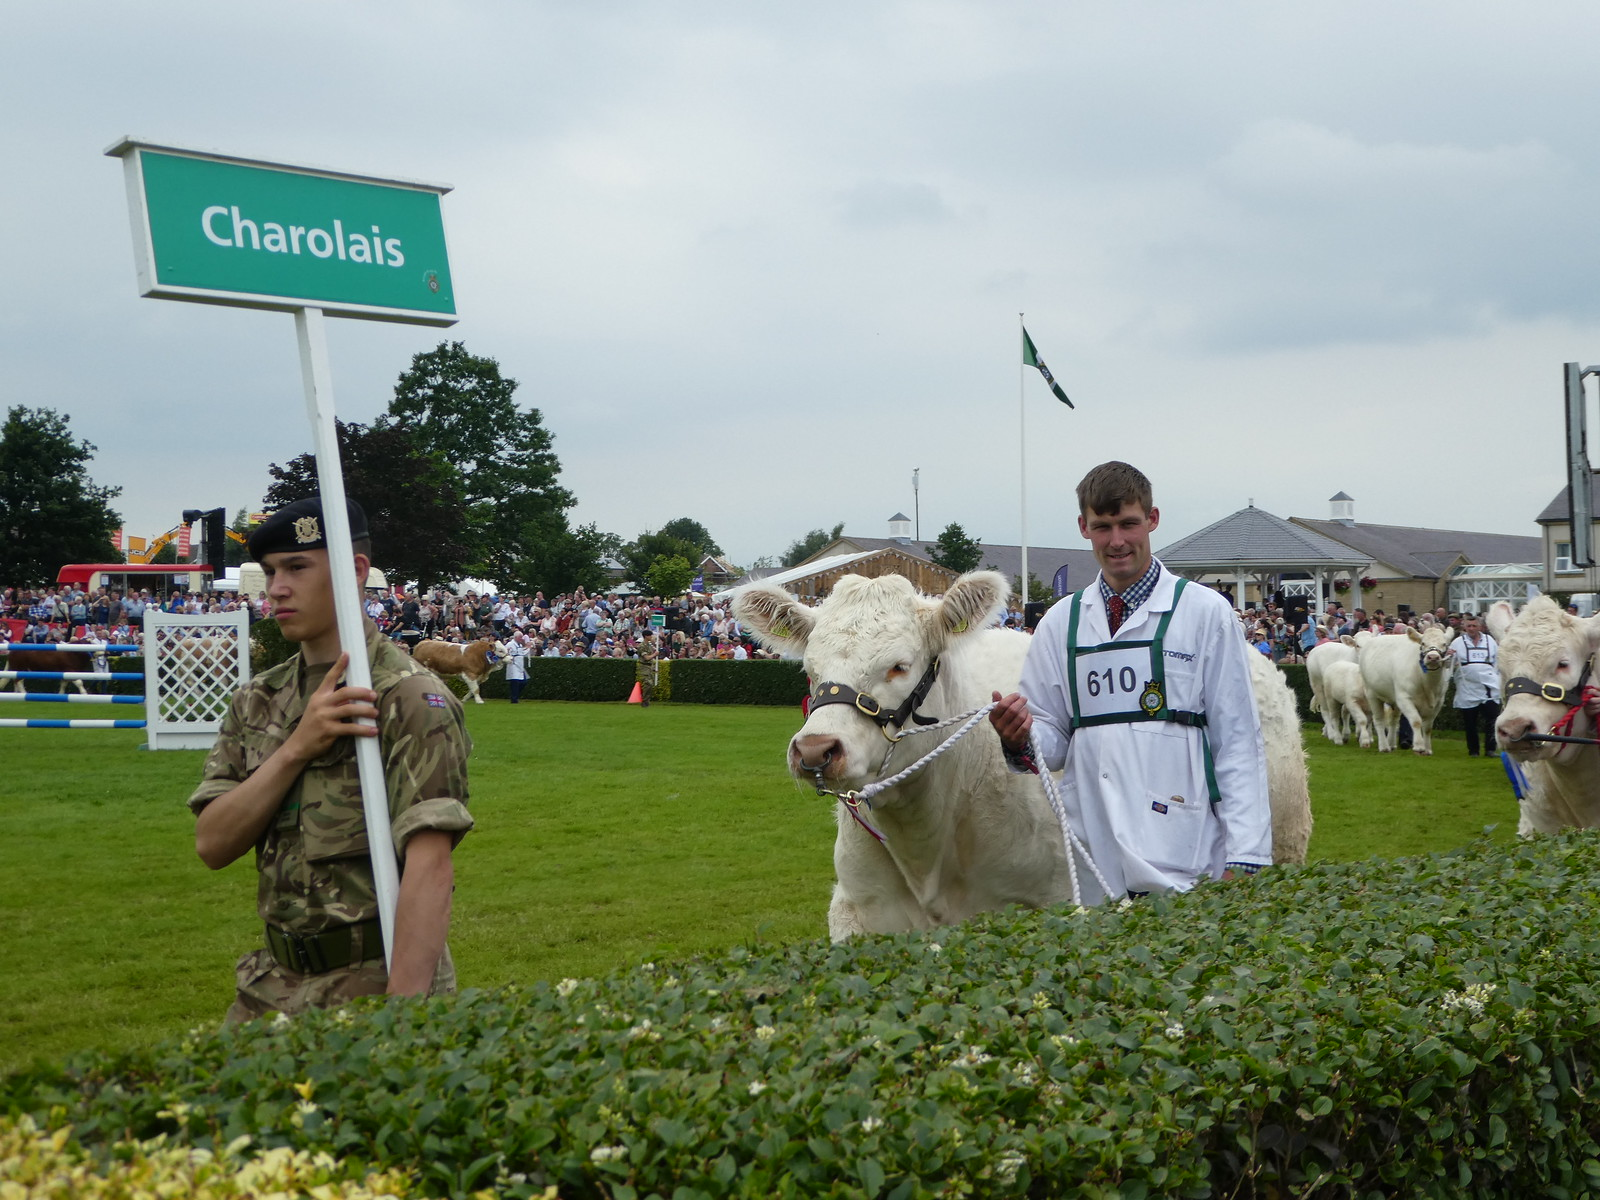 Grand cattle Parade, Great Yorkshire Show, Harrogate